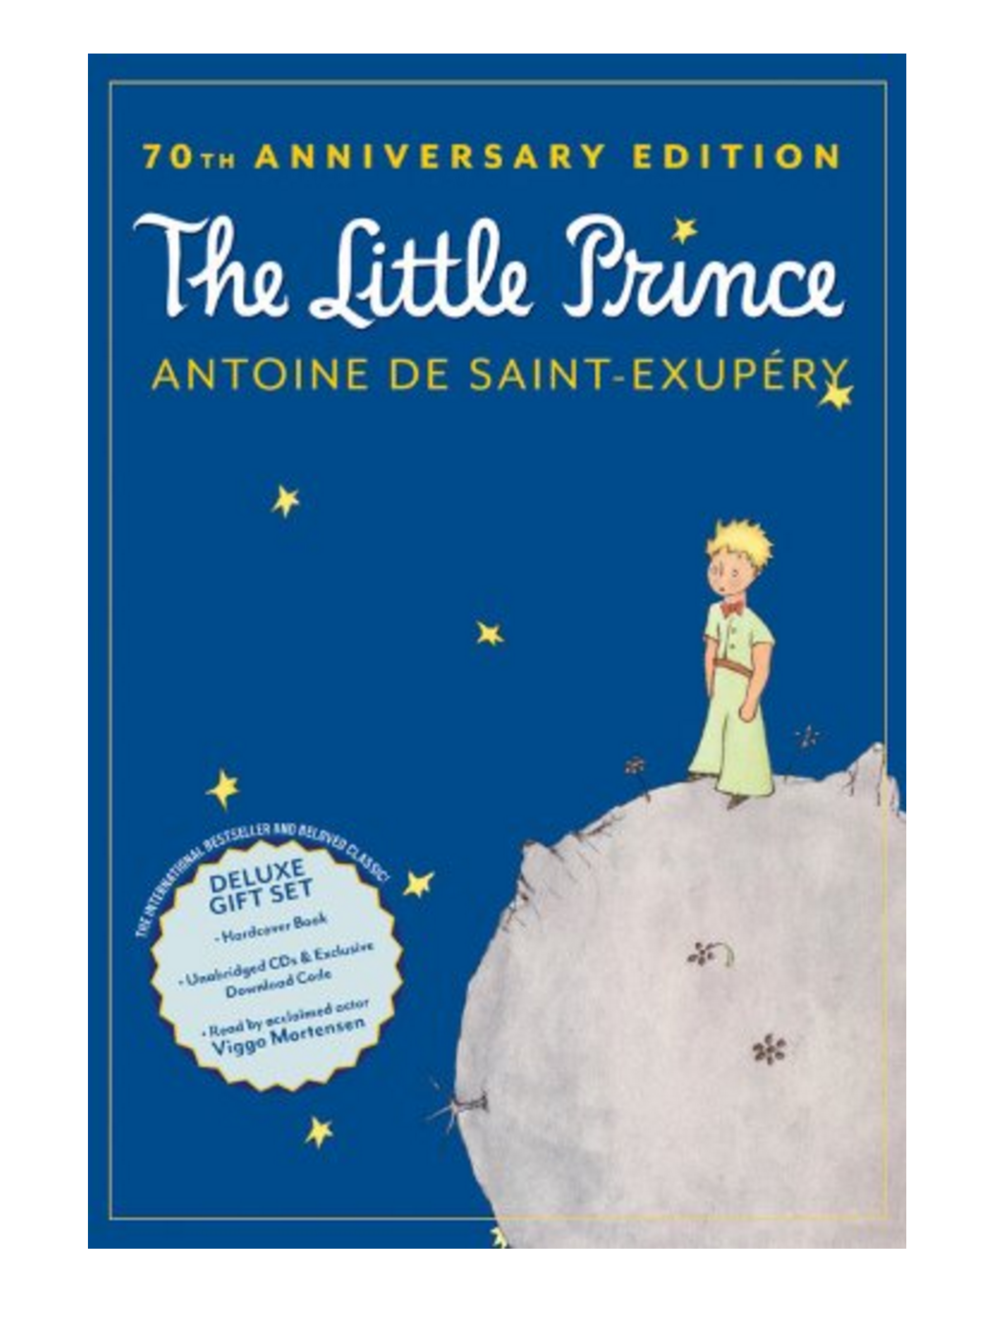 The Little Prince 70th Anniversary Edition Deluxe Gift Set